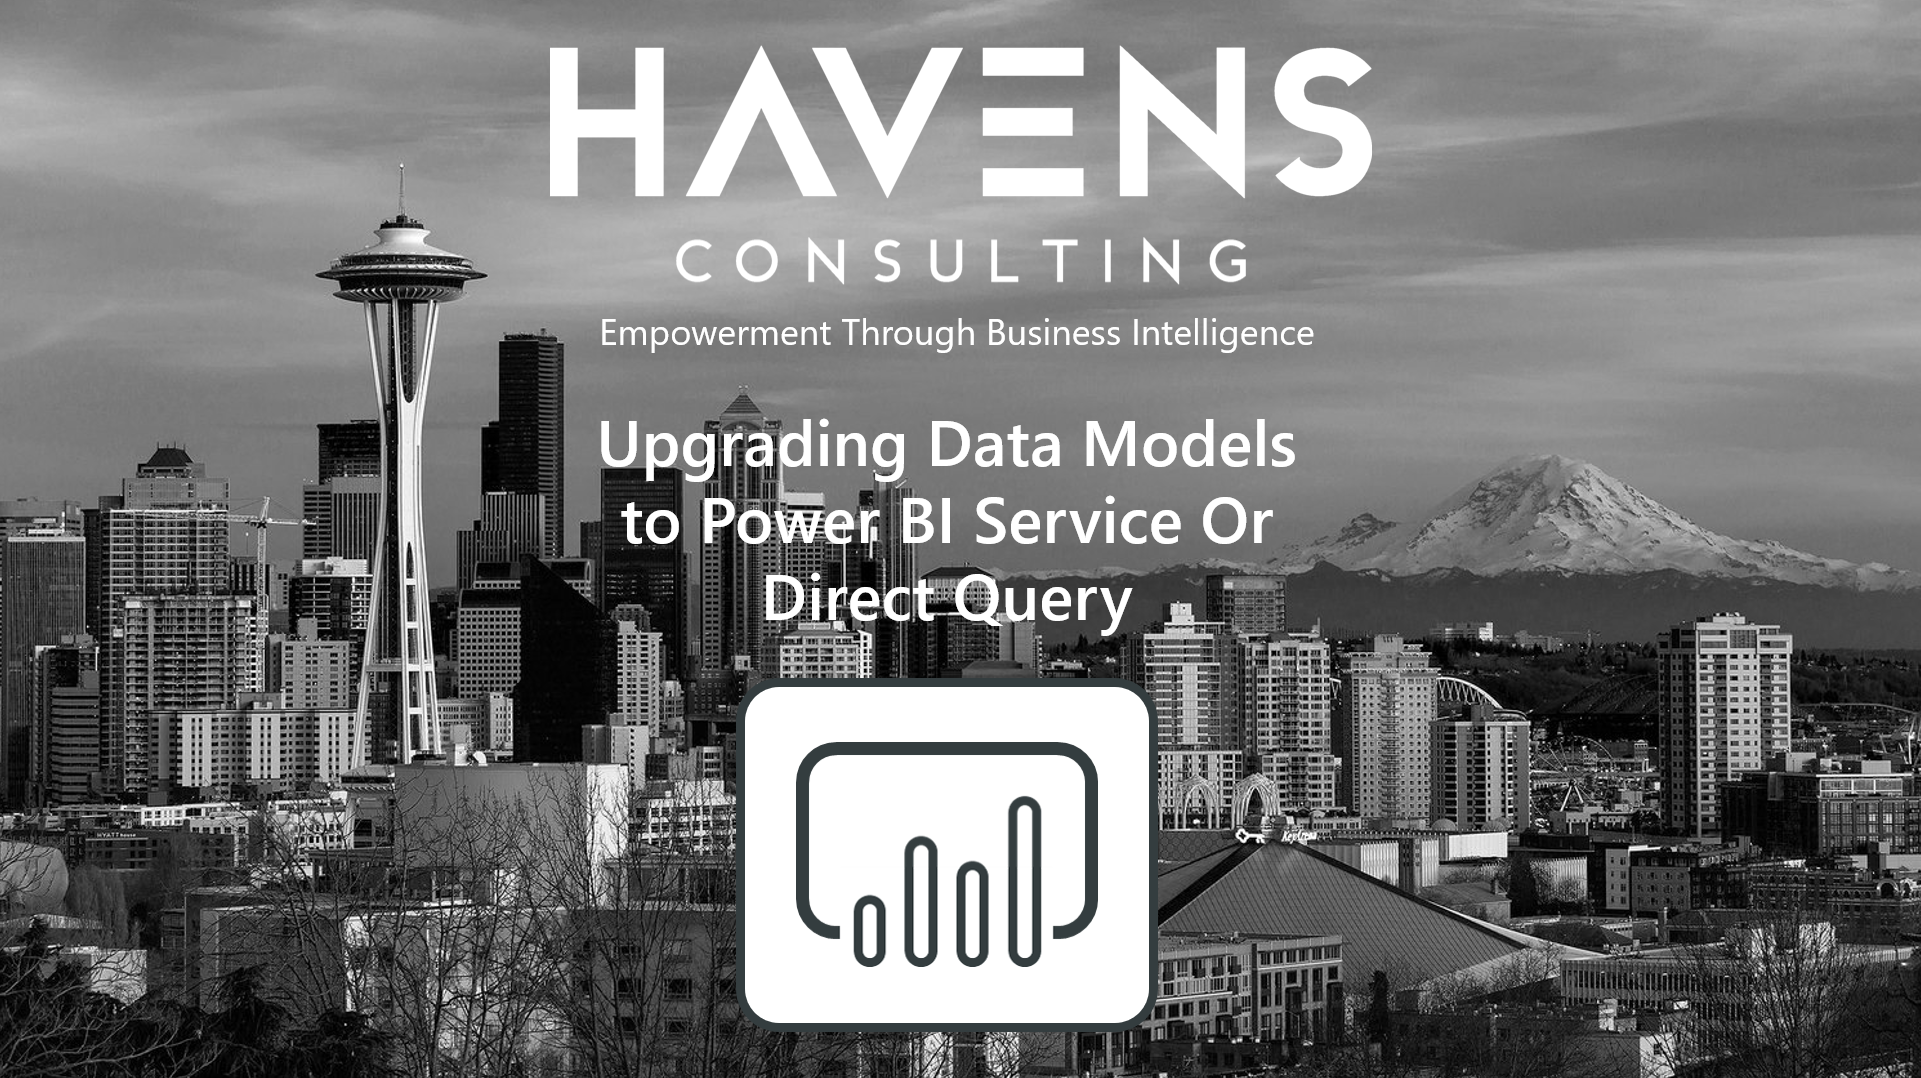 Upgrading Data Models to Power BI Service Or Direct Query